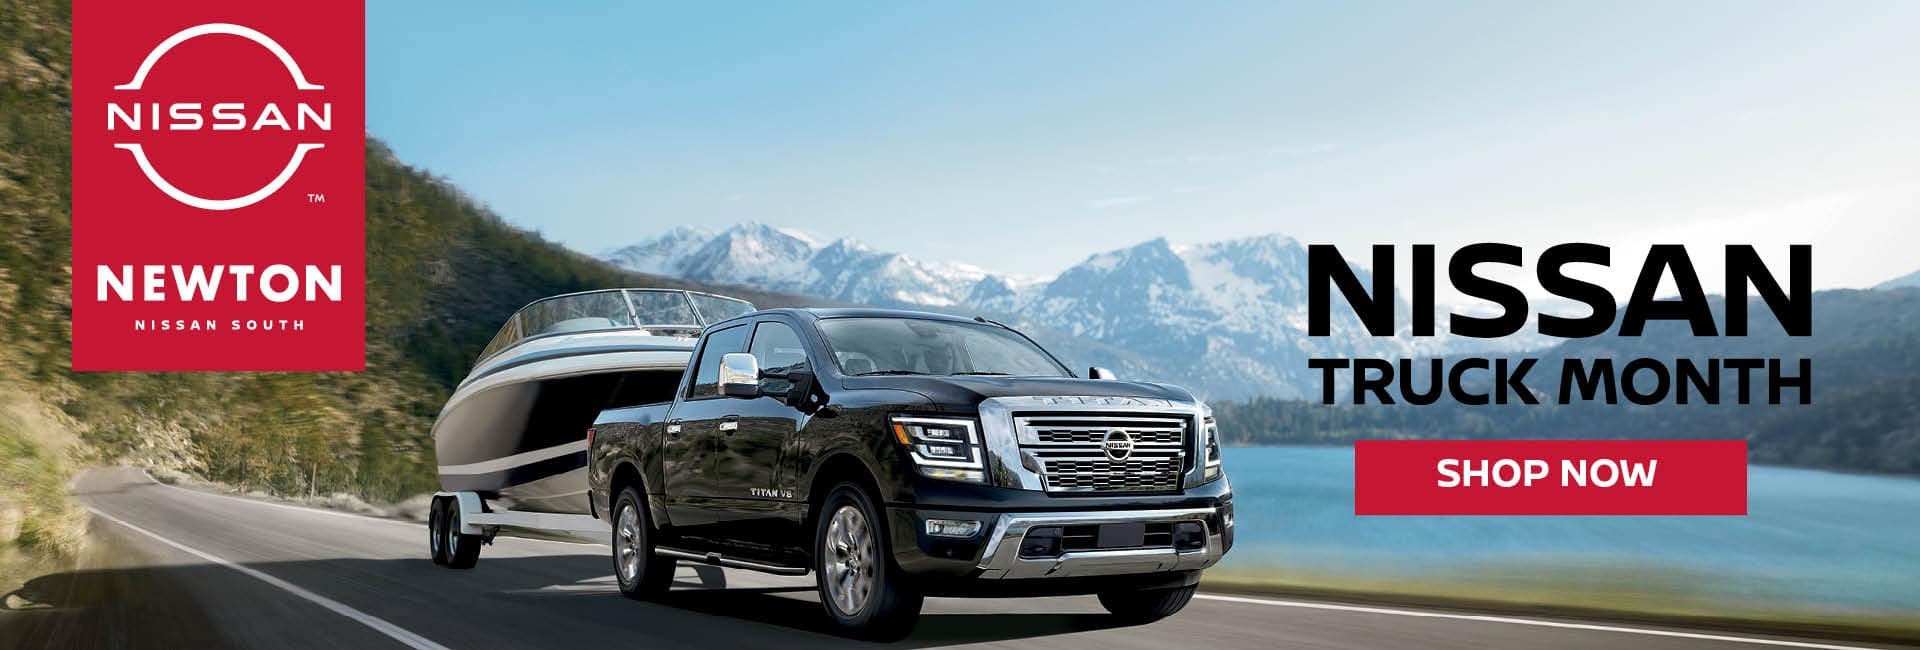 Nissan Truck Month | Save on Titan Deals